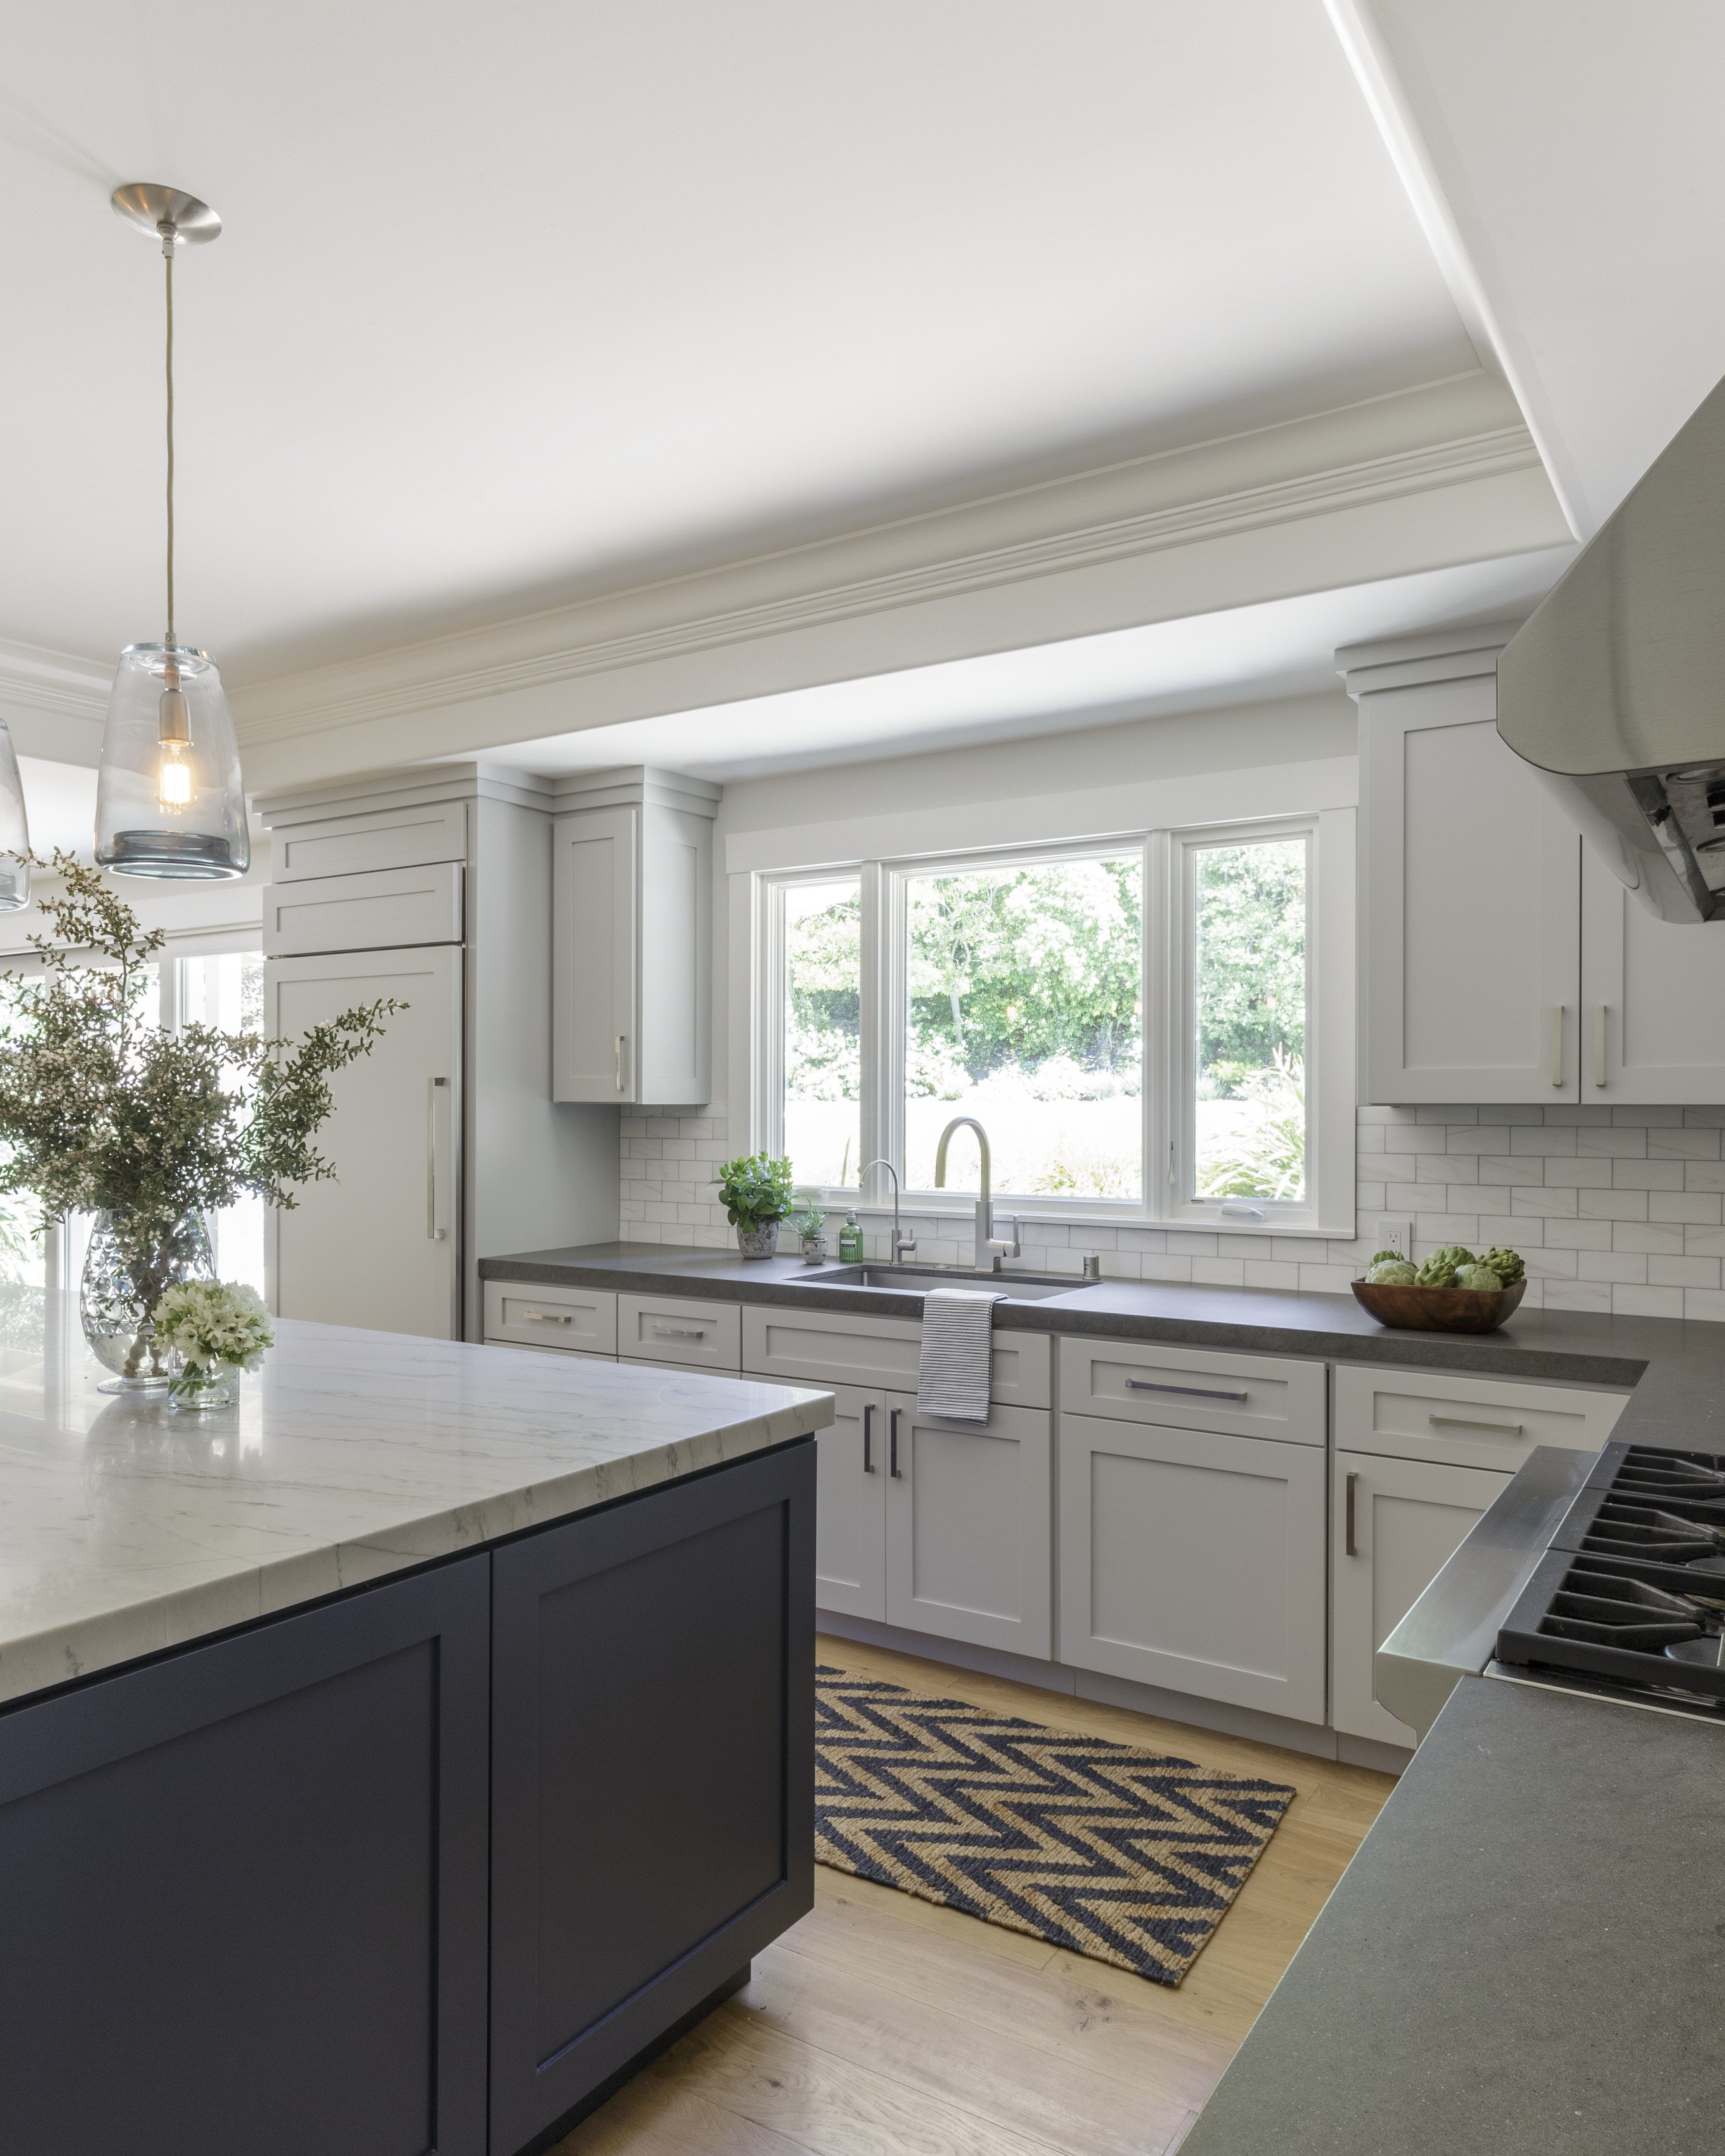 The Custom Navy Blue Island Is A Perfect Contrast To The Soothing Grey Cabinetry Light Gray Cabinets New Kitchen Cabinets White Kitchen Navy Island